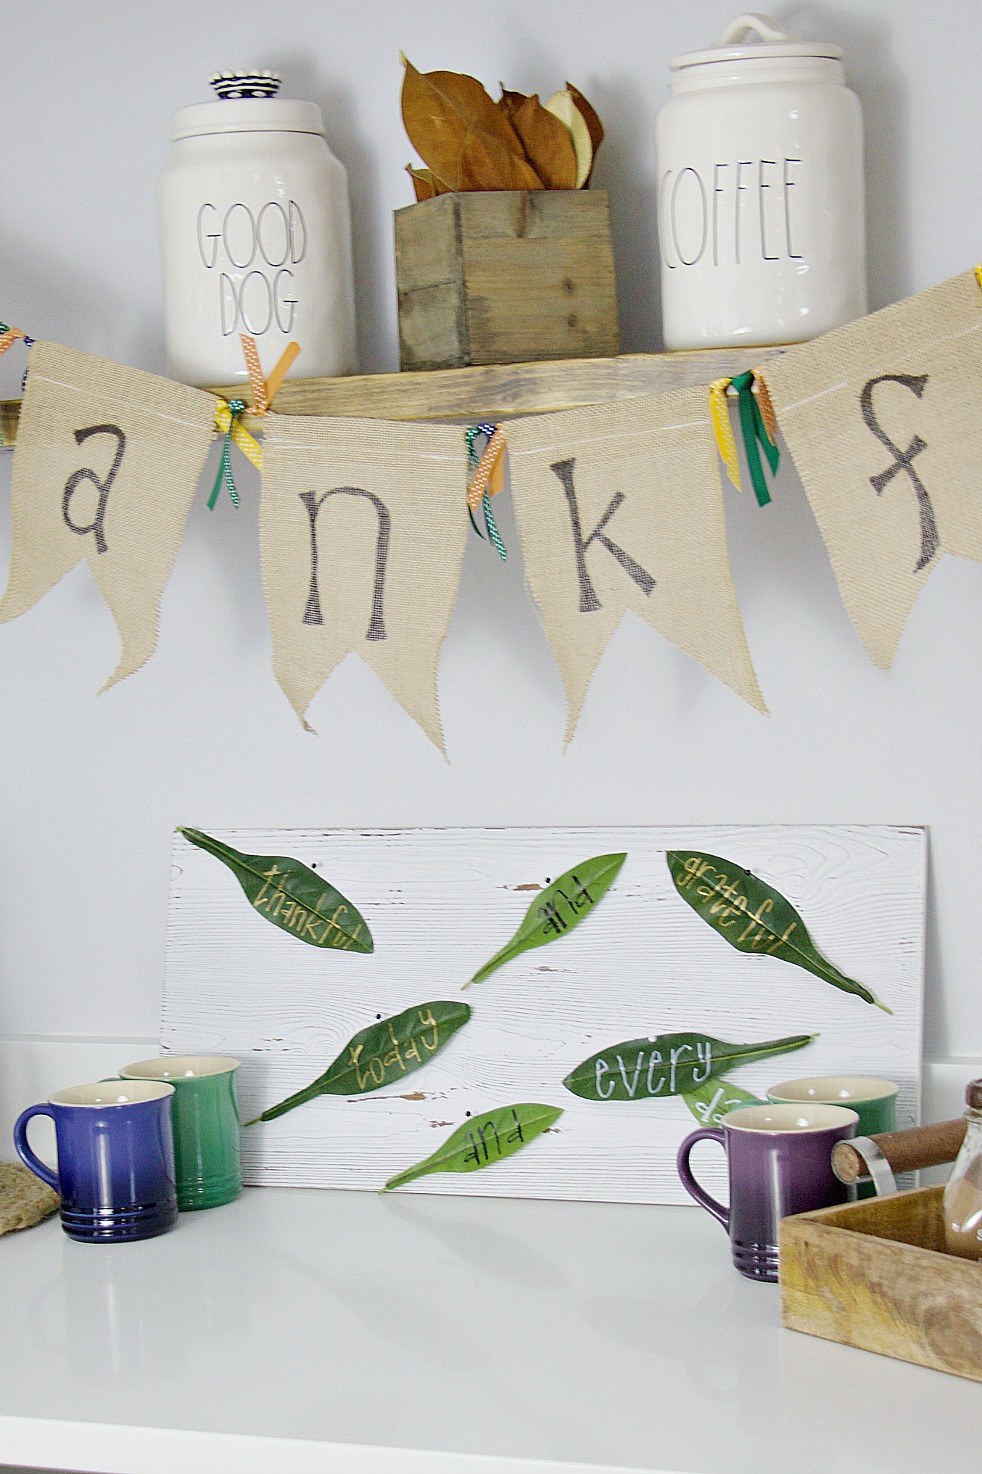 Thanksgiving wall art tutorial is an adorable addition to any holiday decor!